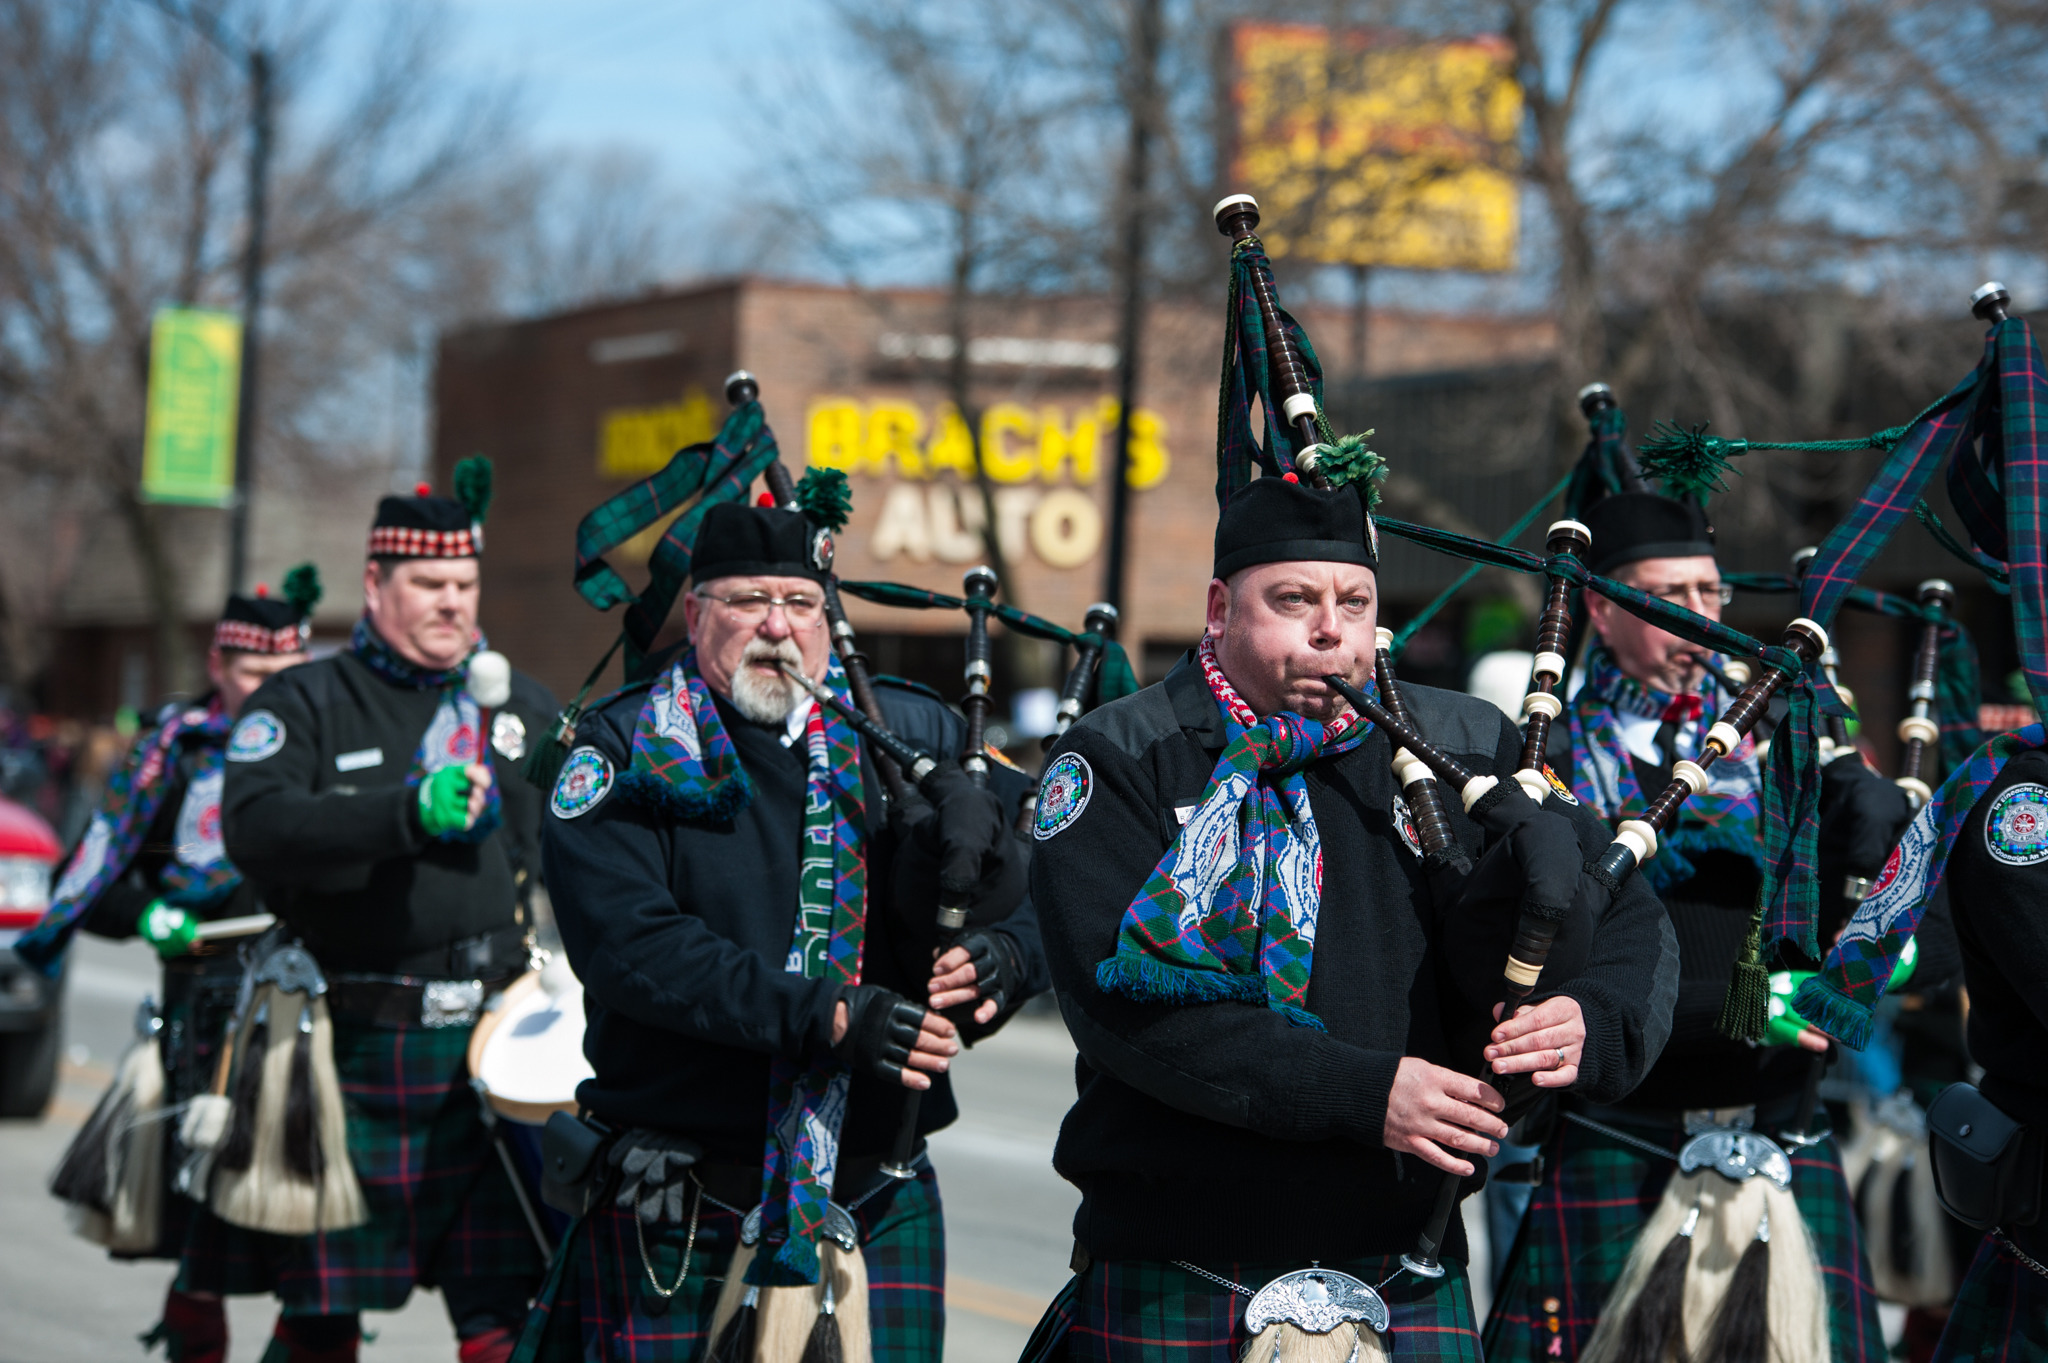 South Side Ny Christmas Parade 2020 South Side Irish Parade | 103rd St and Western Ave | Things to do